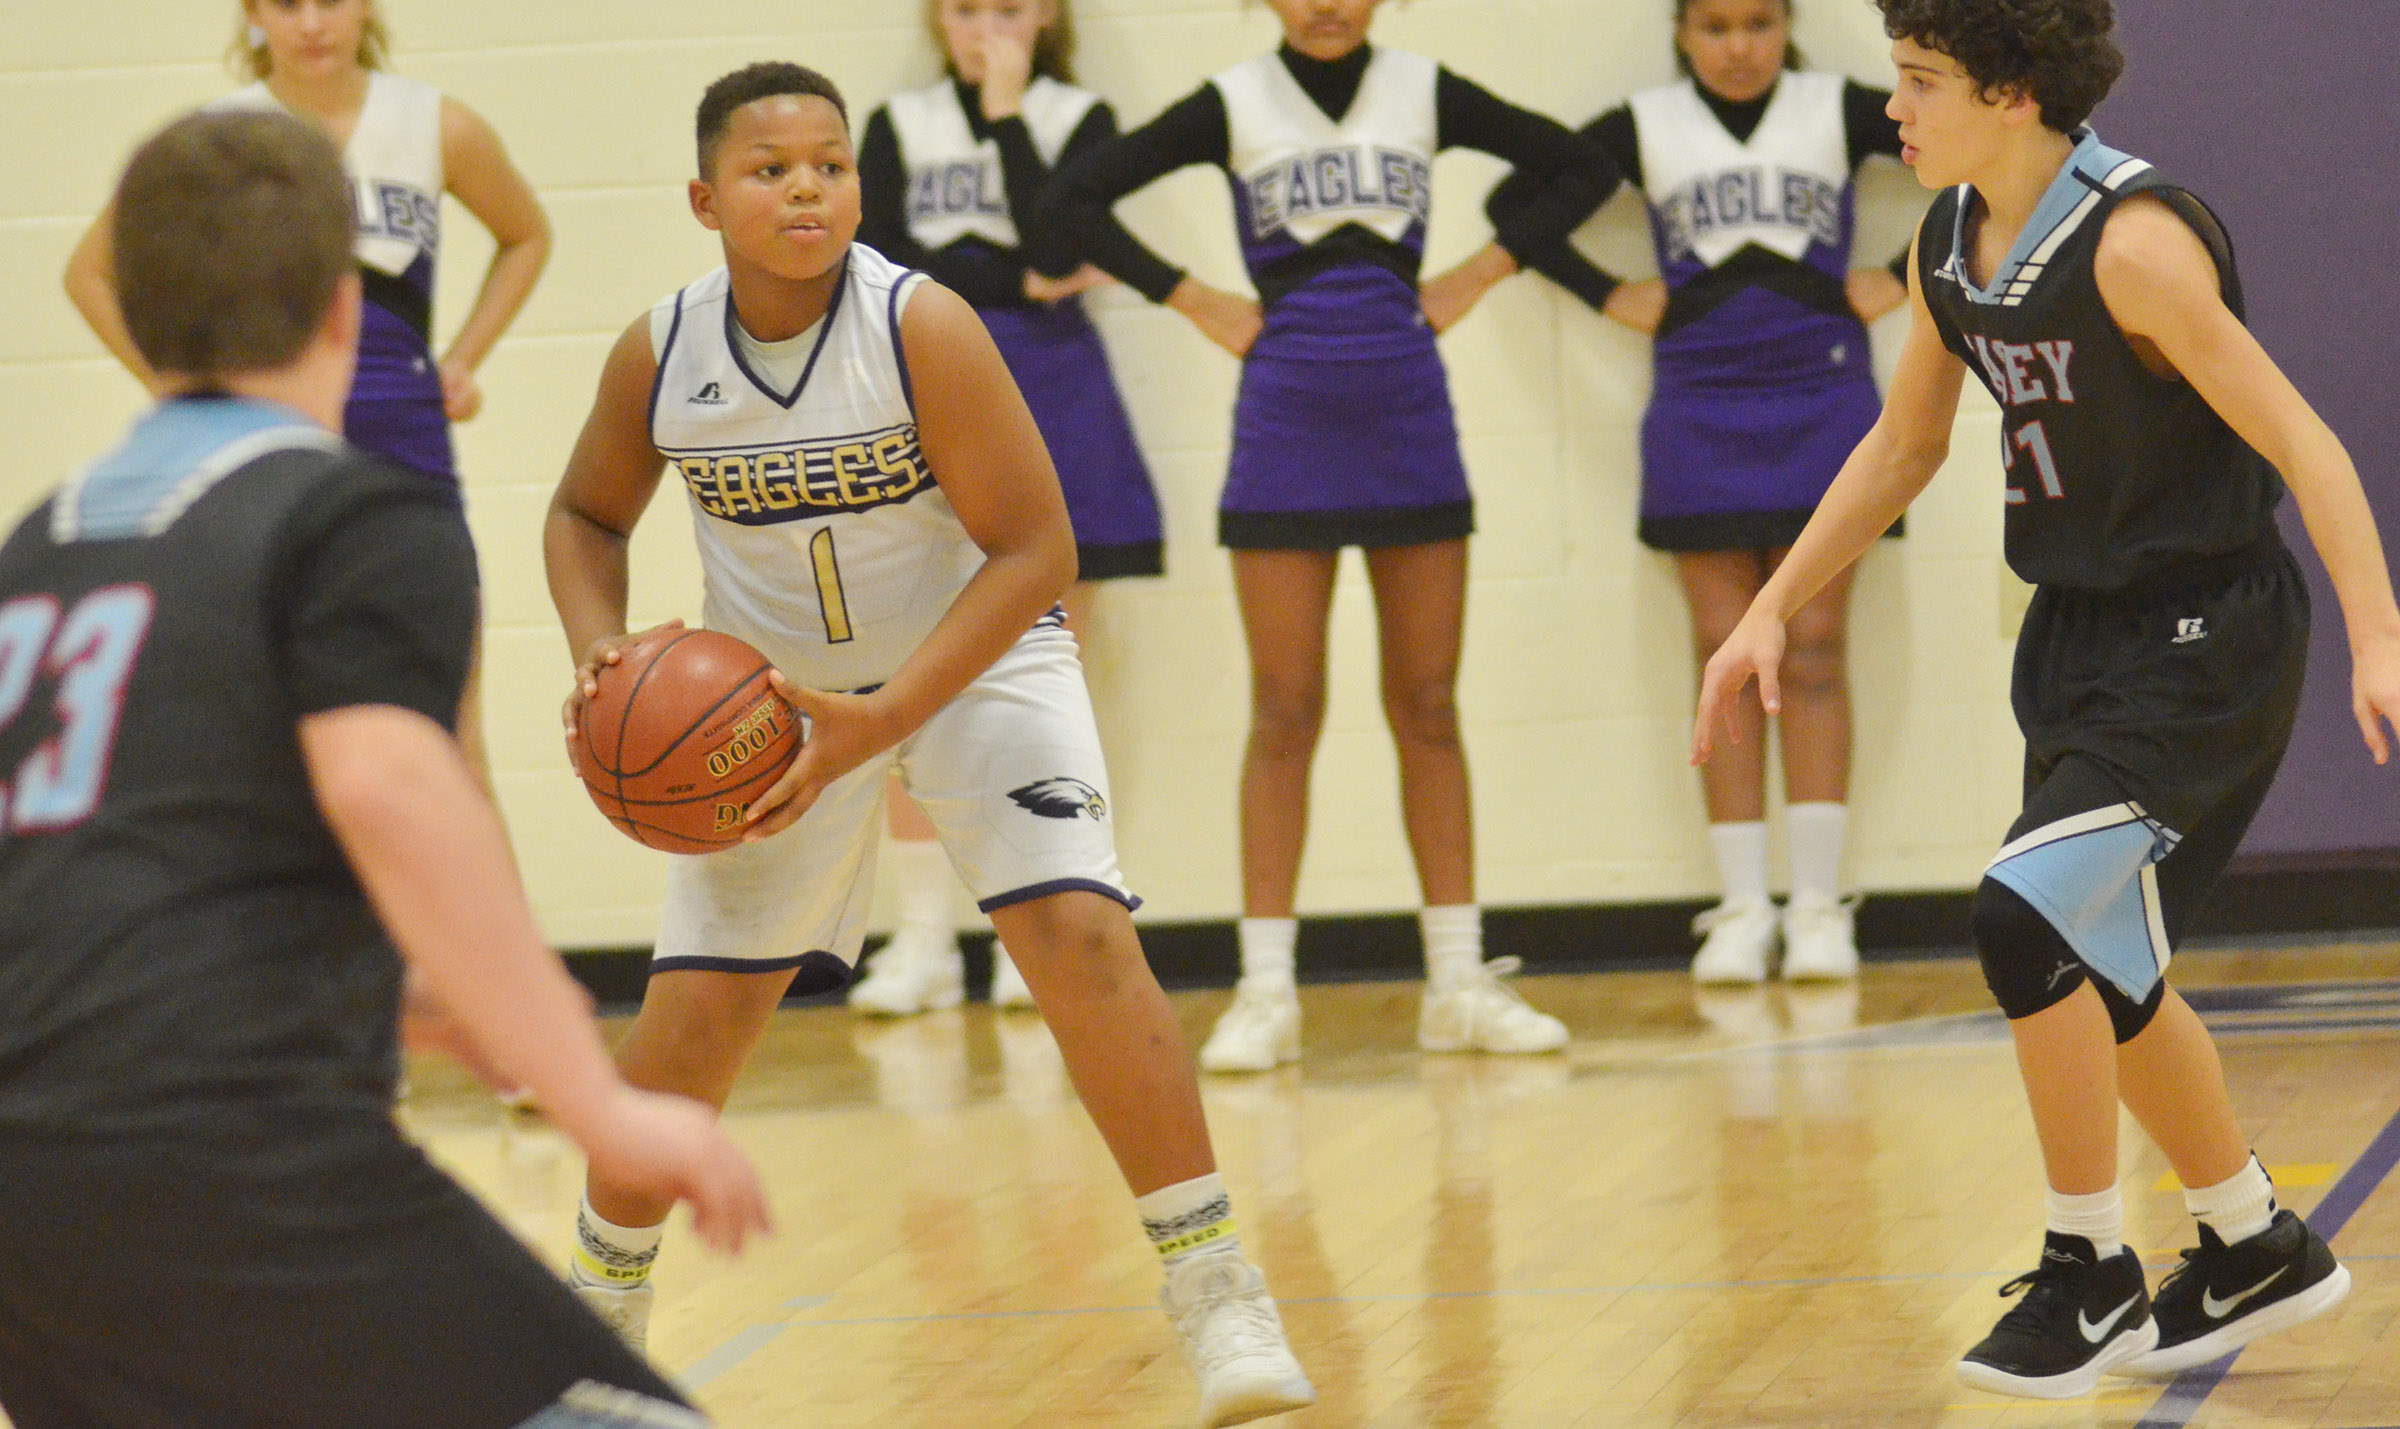 CMS seventh-grader Keondre Weathers looks to pass.